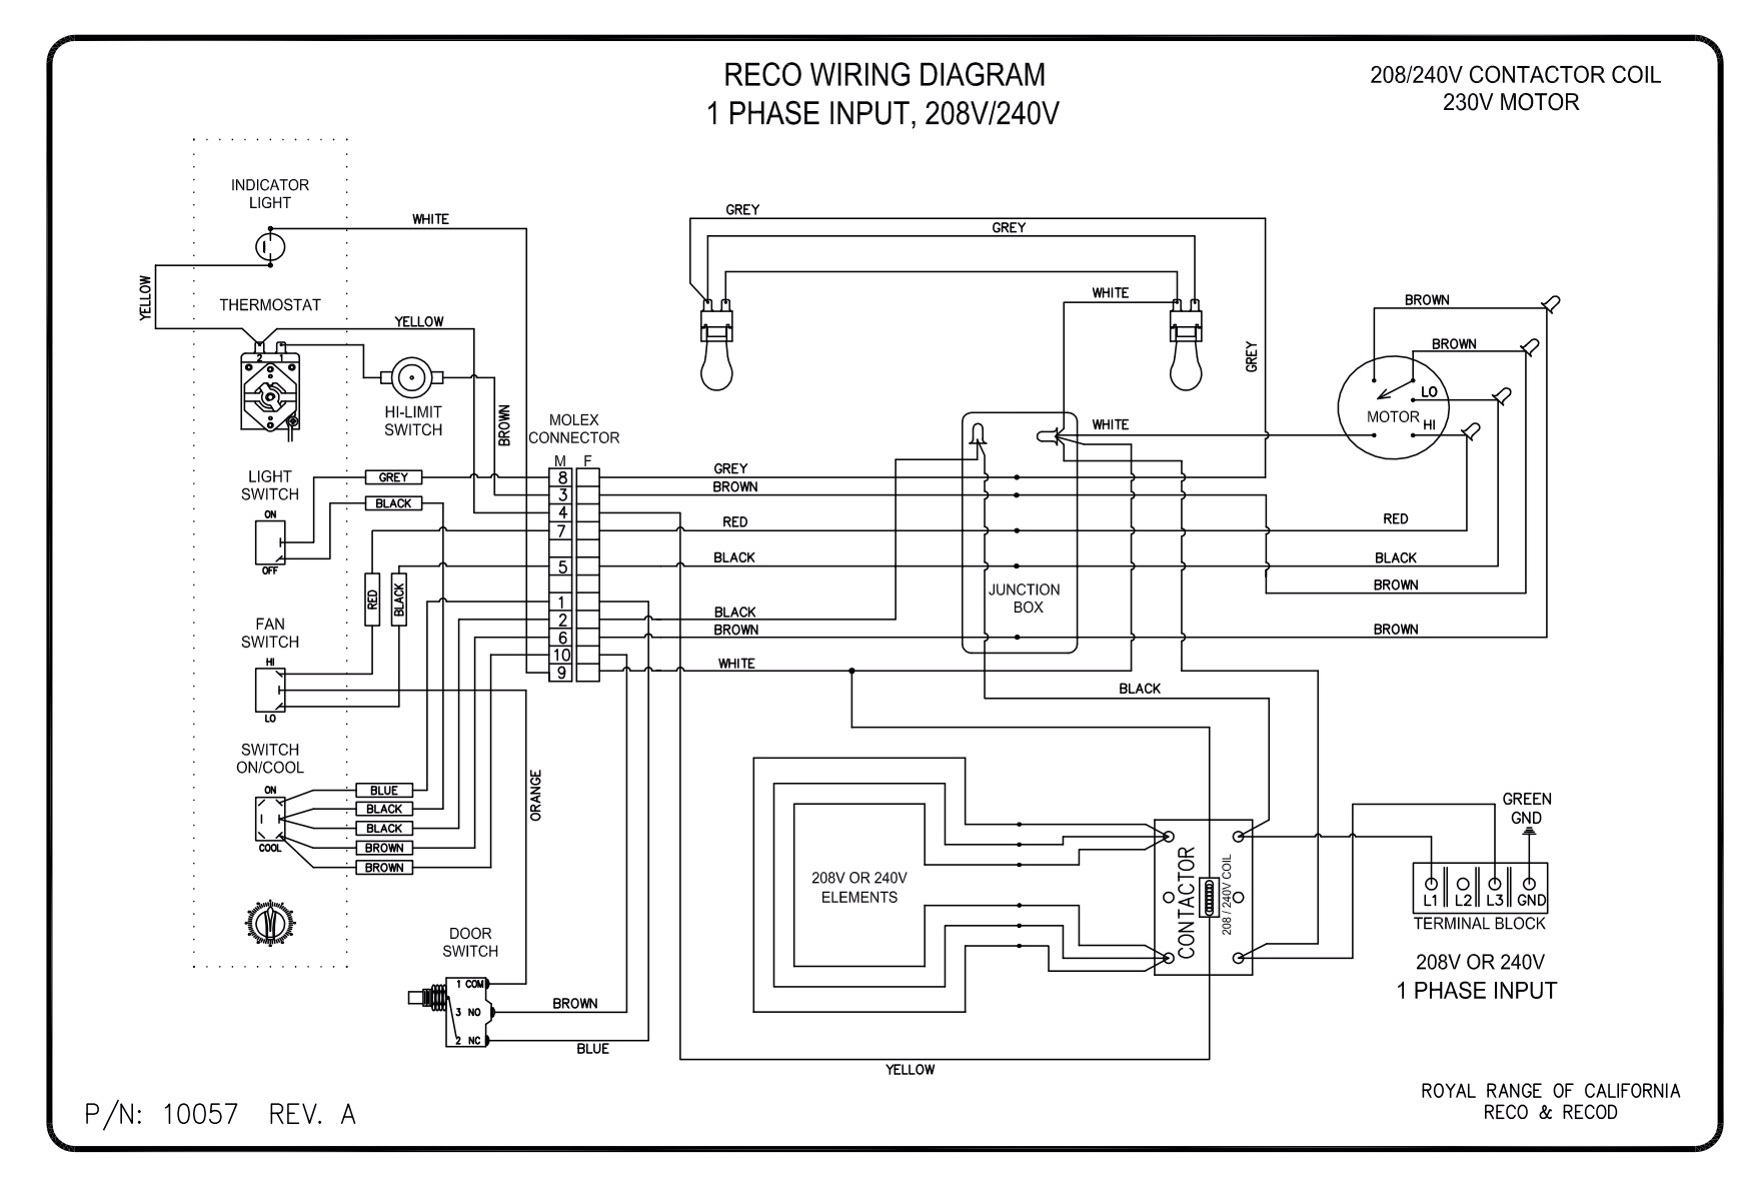 electric cooker switch wiring diagram briggs and stratton magneto diagrams royal range of california reco